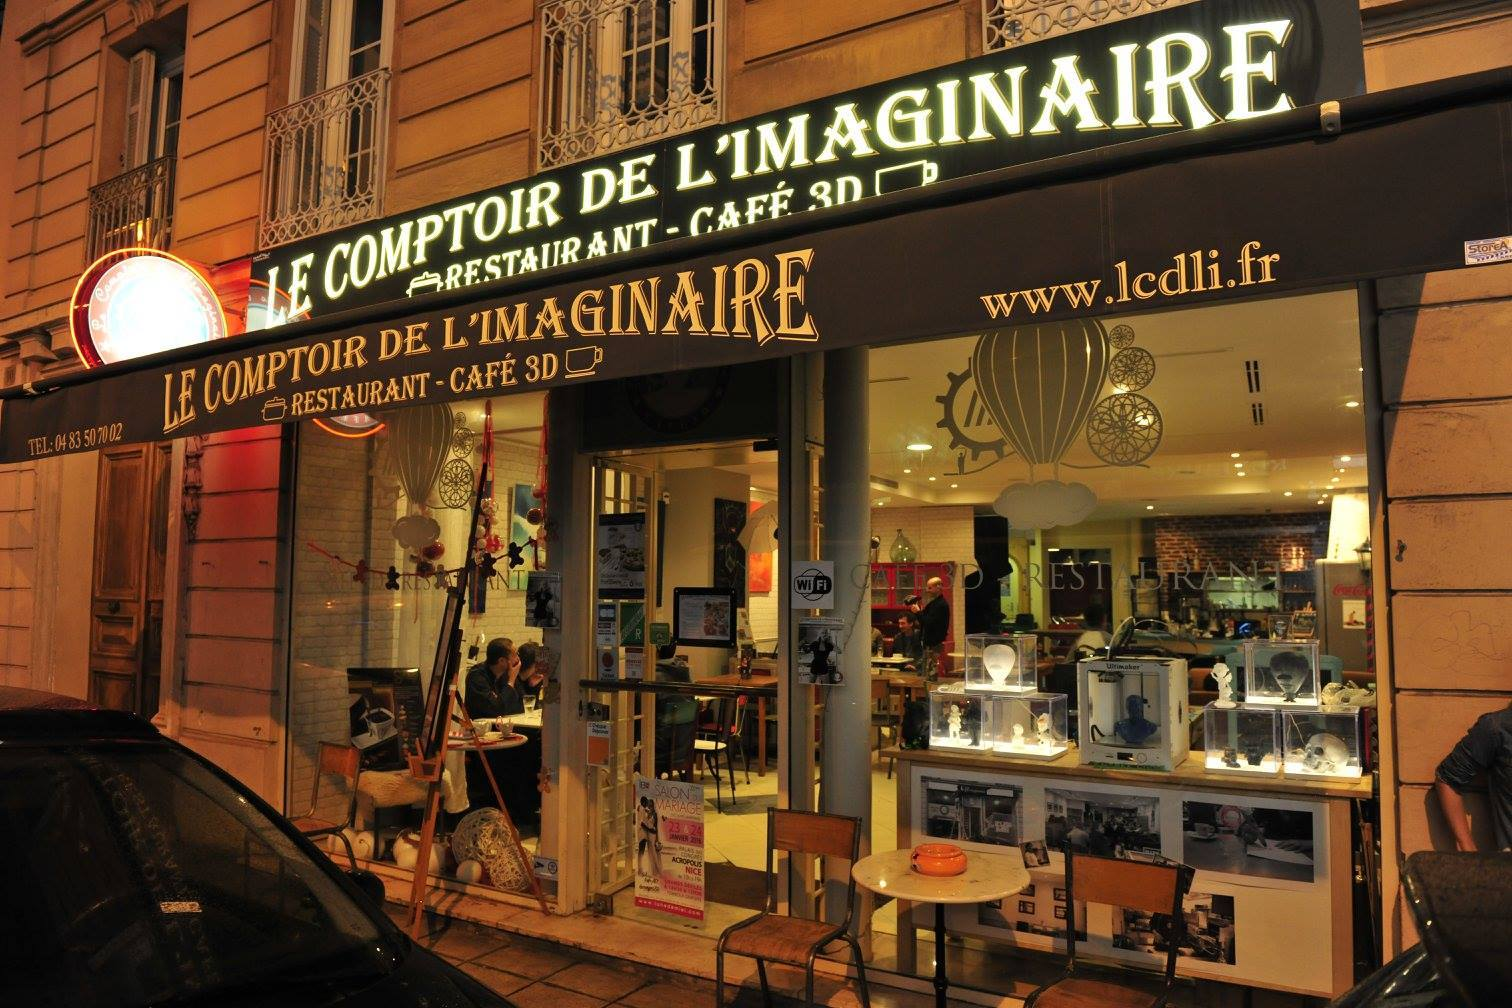 Brunch le comptoir de l 39 imaginaire 06000 nice oubruncher - Le comptoir general brunch ...